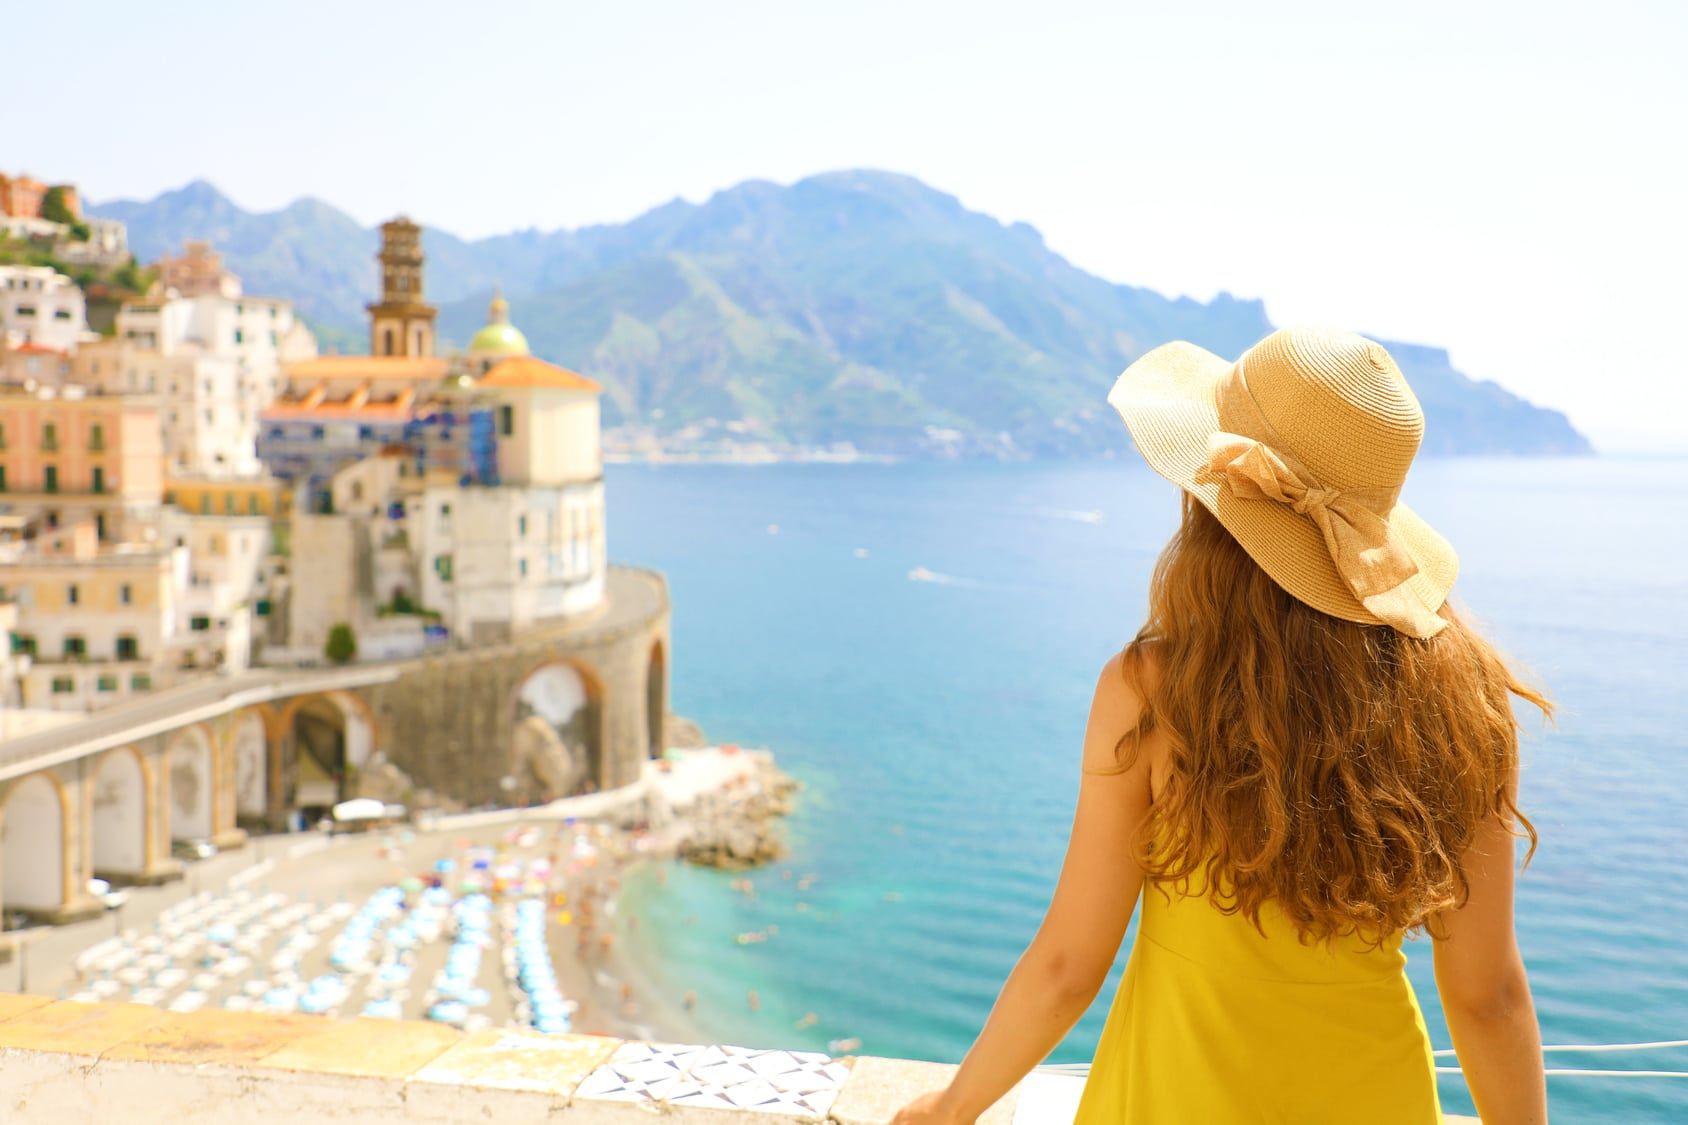 How To Make Your Dream Solo Traveling Experience While